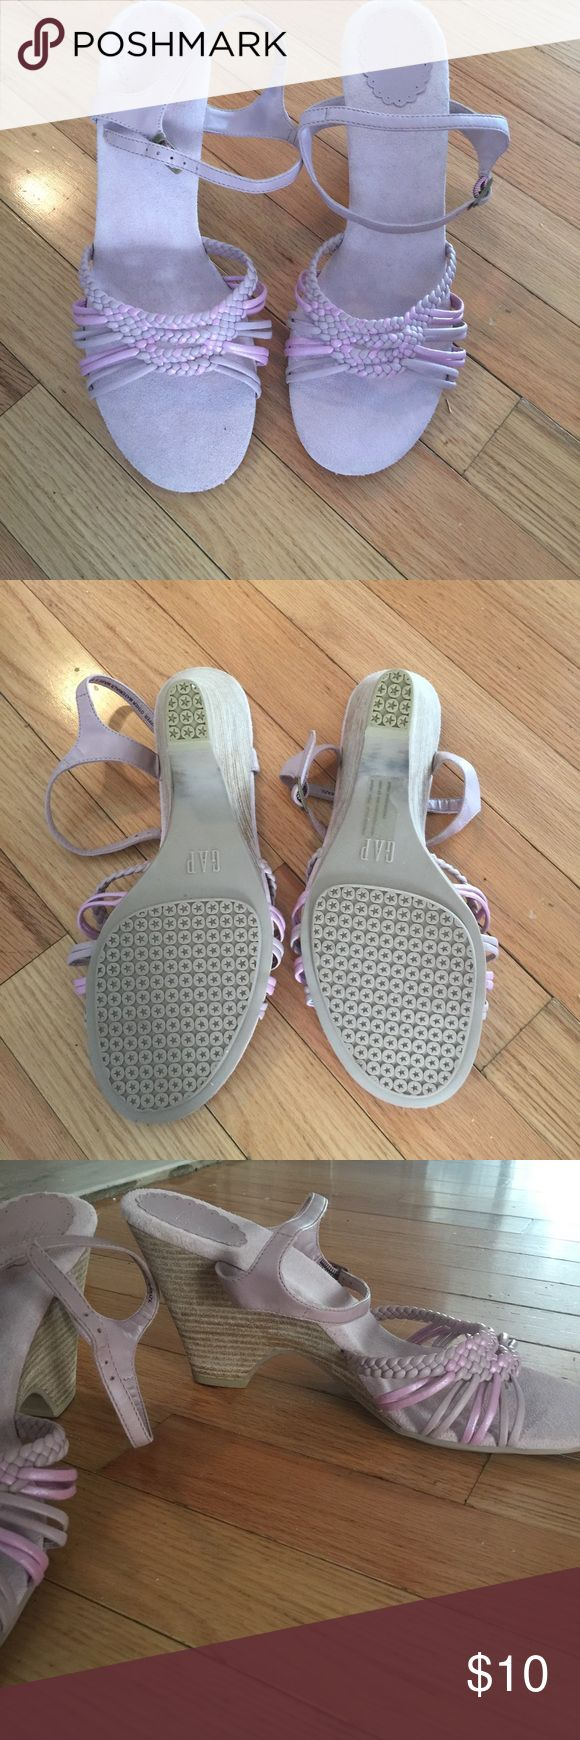 Gap shoes New w/no tags super cute with jeans and a cute top! Says size 9 but can fit a size 8 since that is the size I take. Light pink. GAP Shoes Sandals